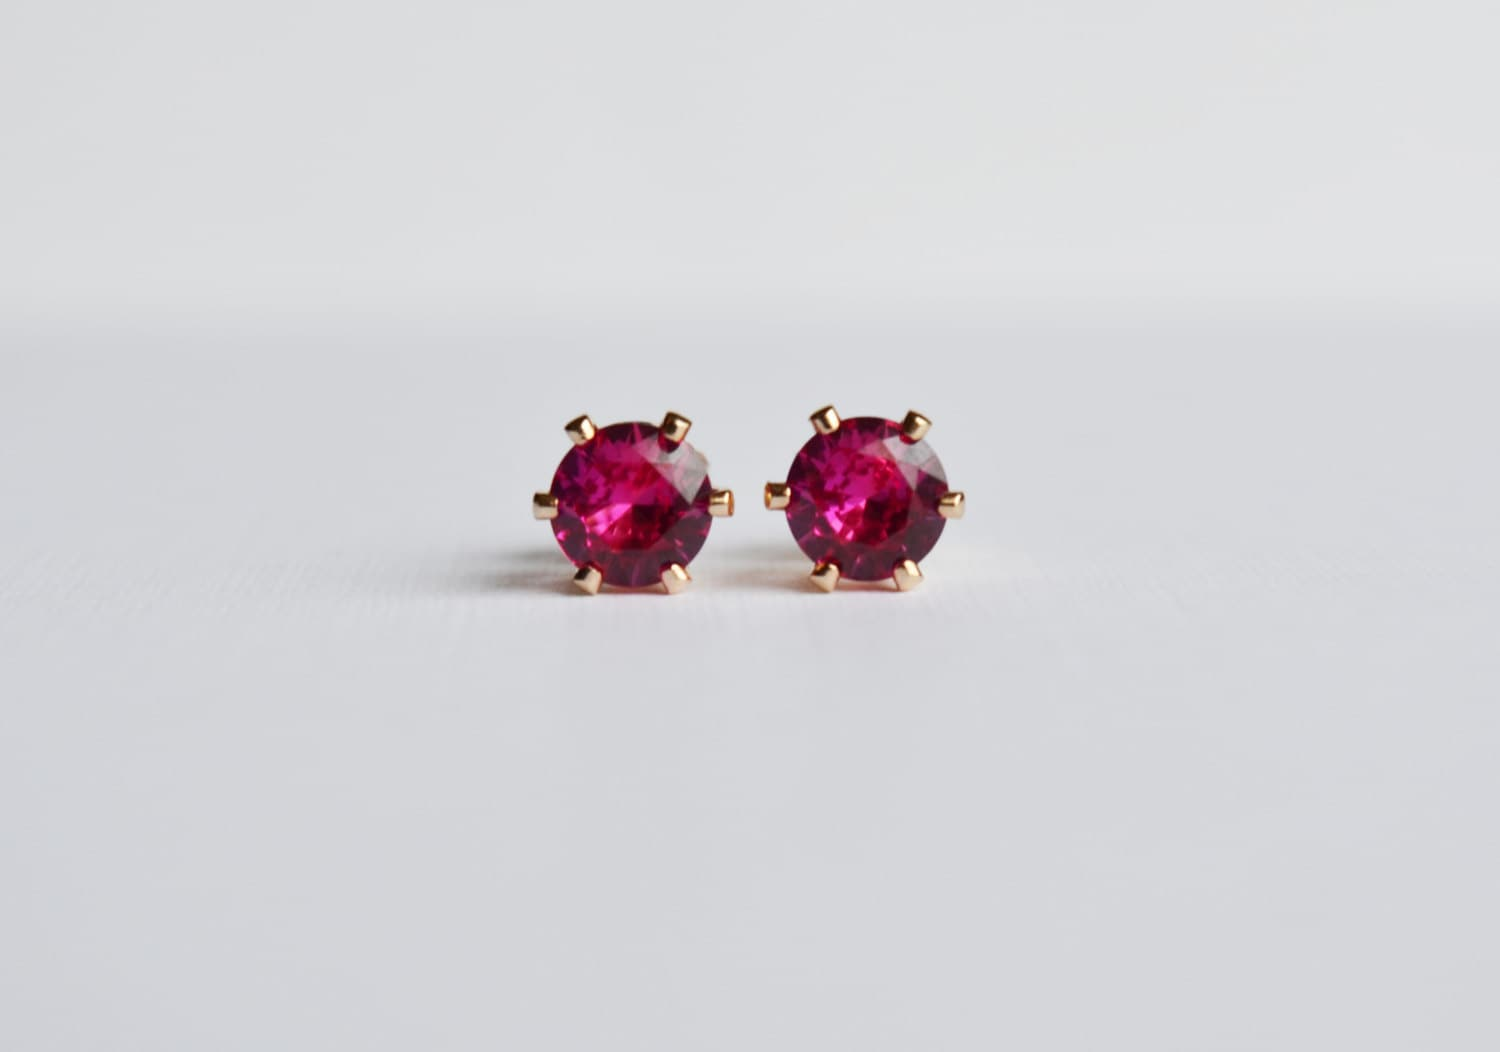 ruby stud earrings 14kt gold filled ruby post earrings july. Black Bedroom Furniture Sets. Home Design Ideas